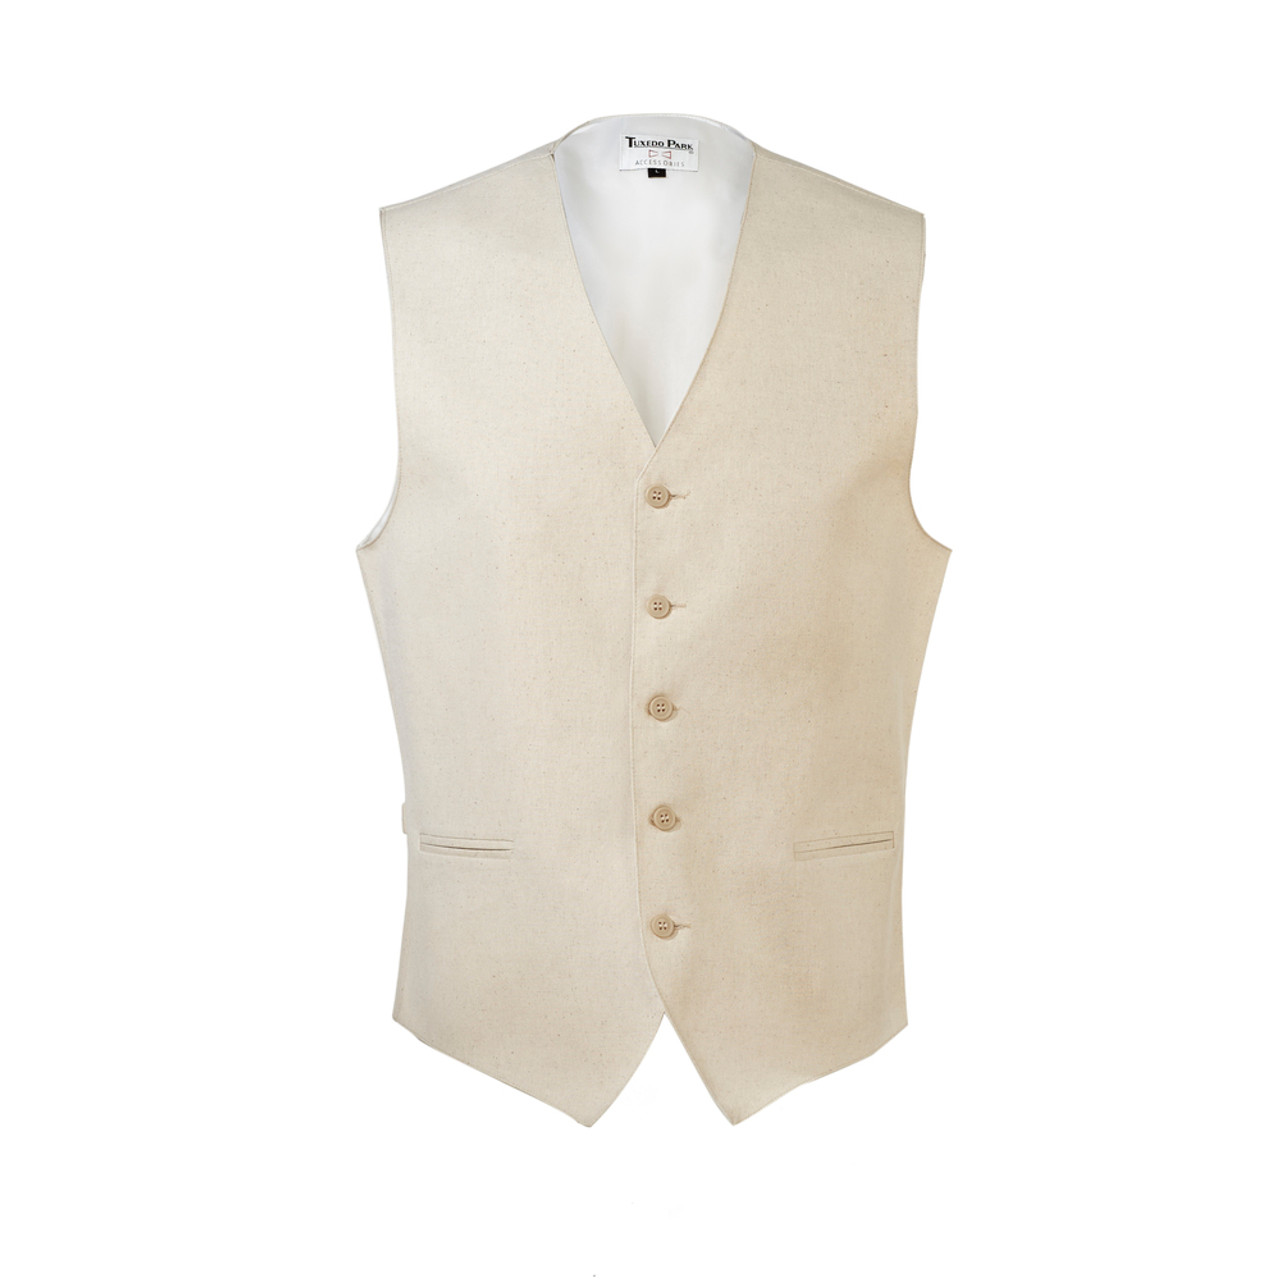 Beige uniform vest.